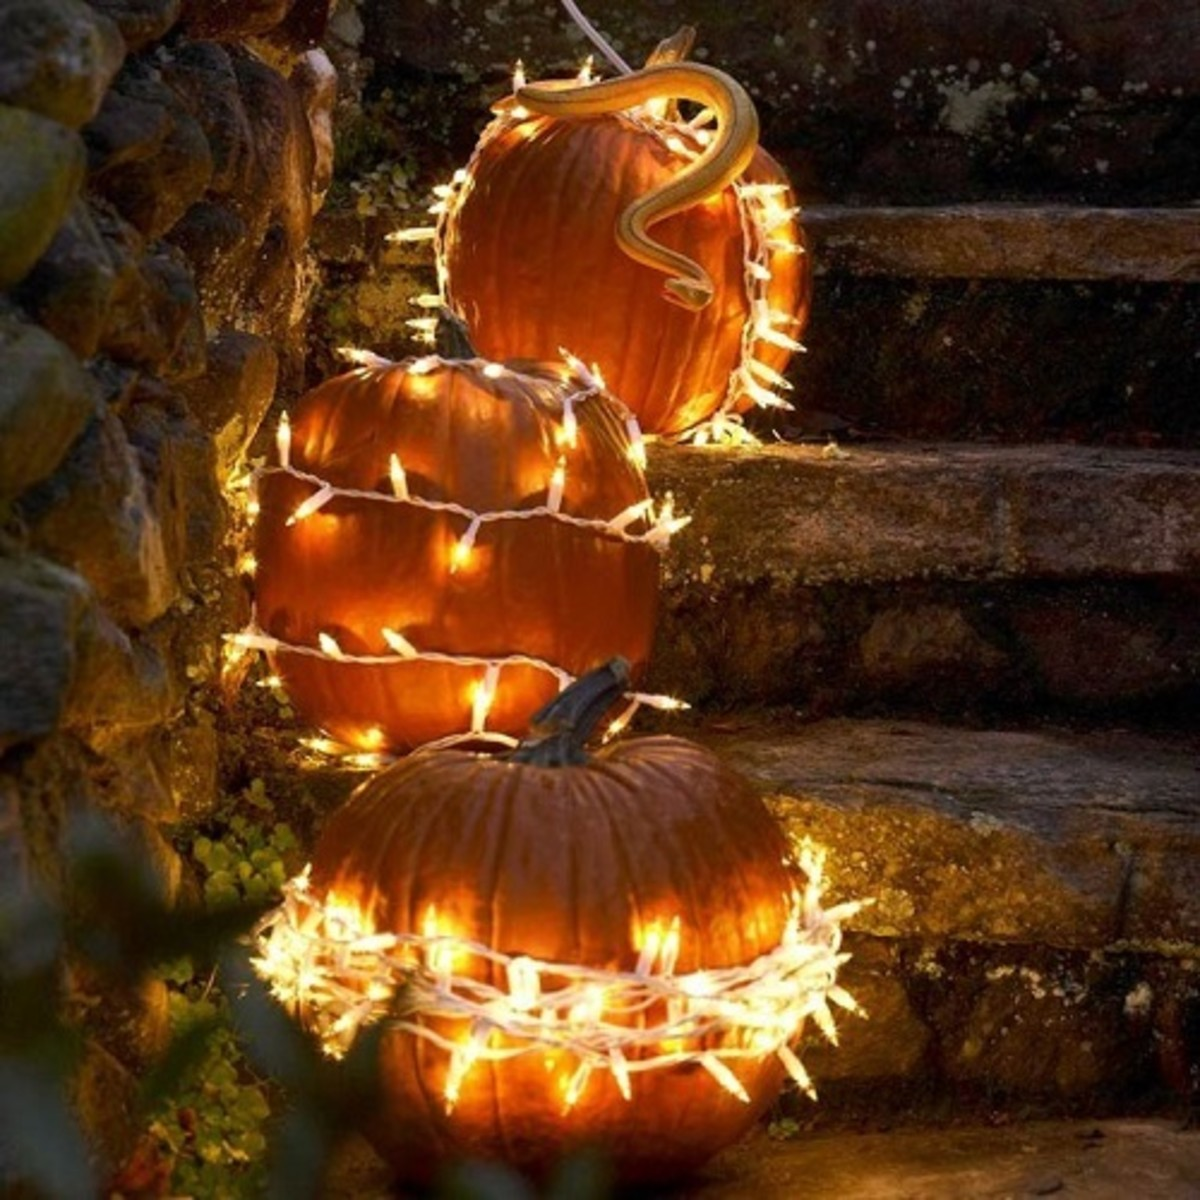 five-ideas-for-fall-decorating-with-pumpkins